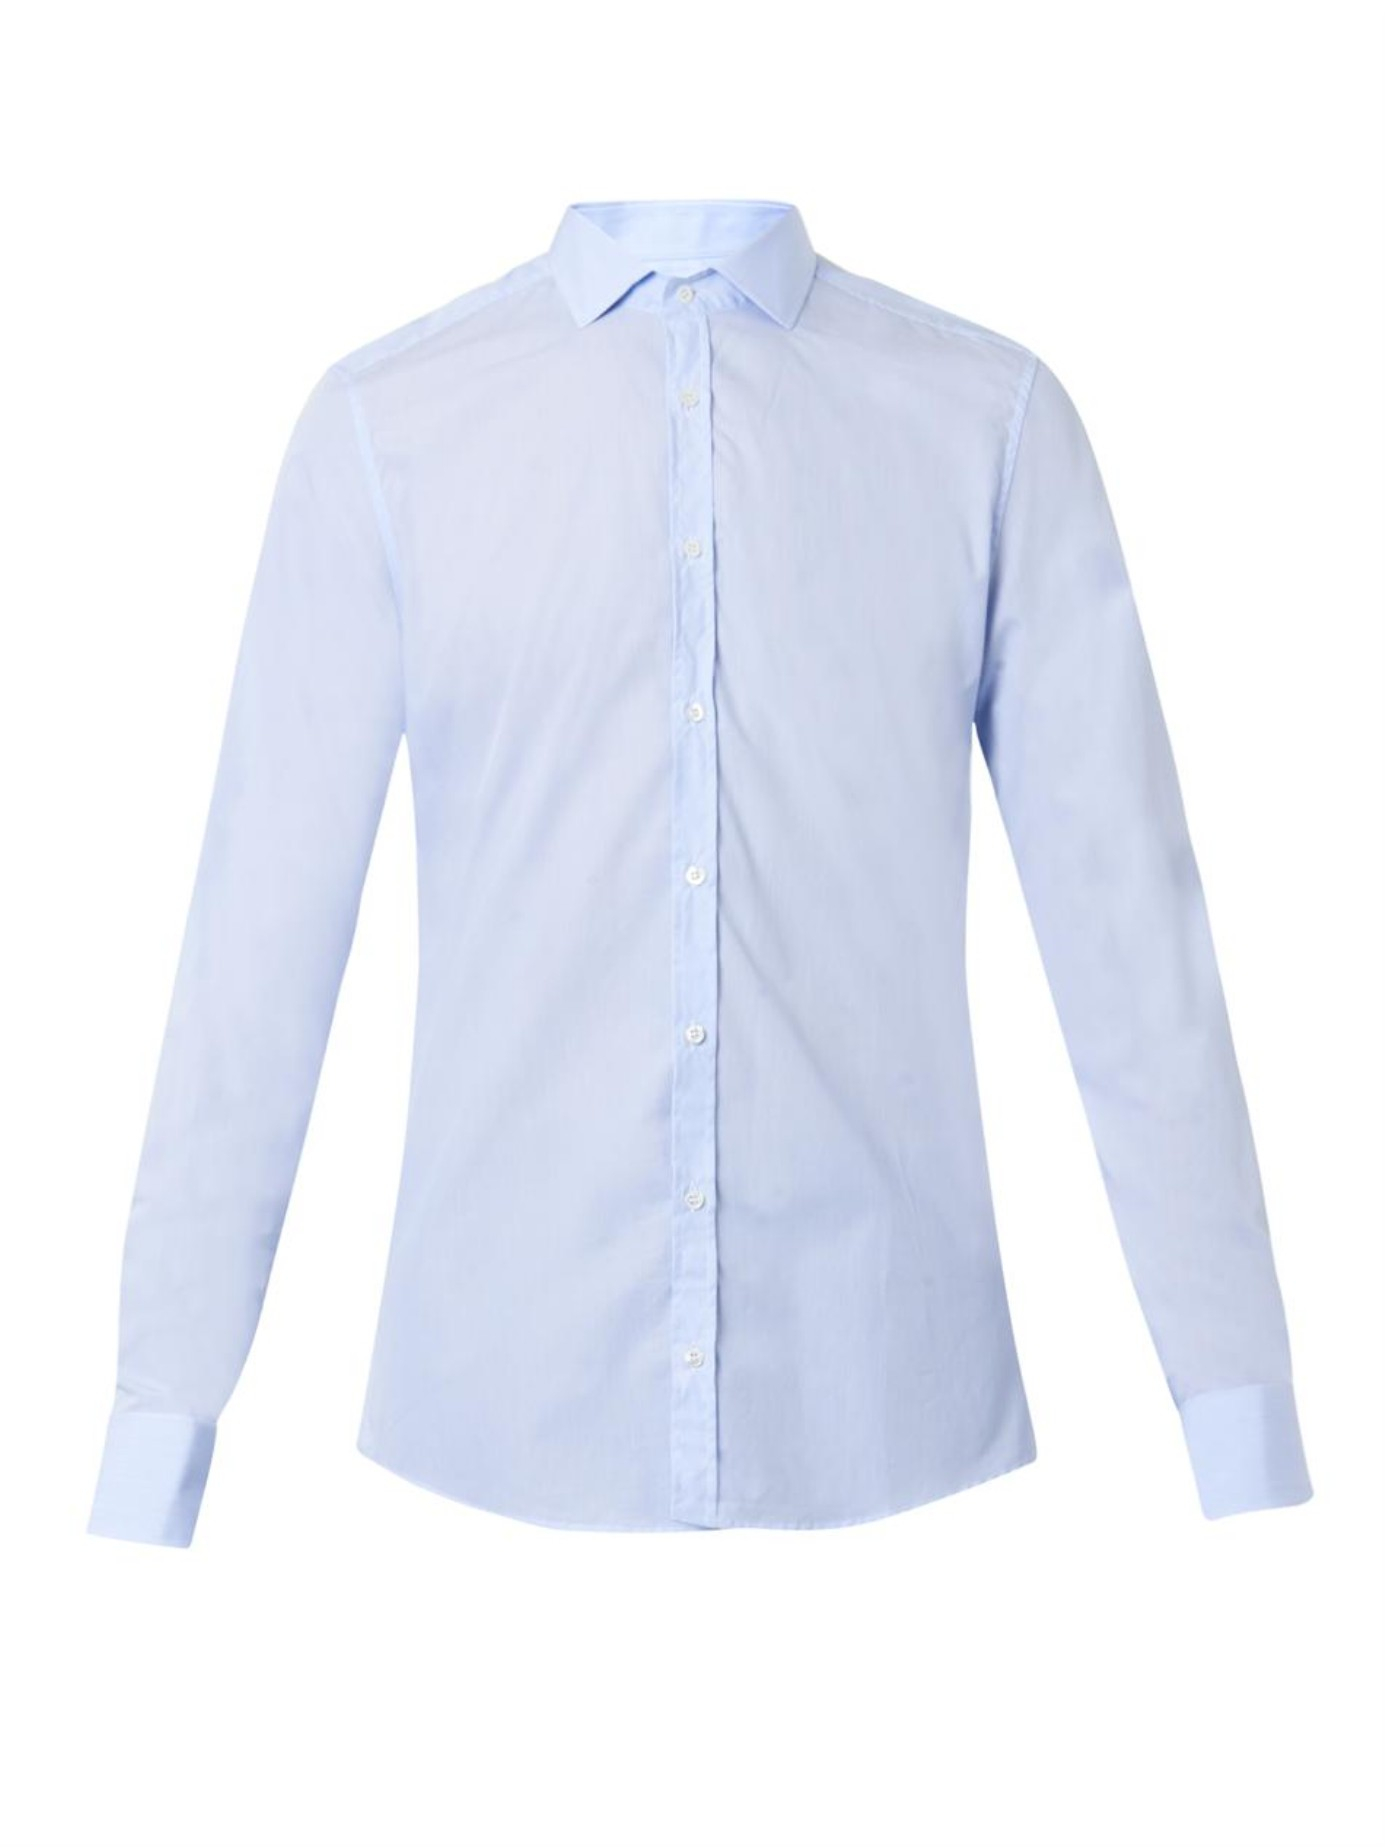 Gucci Pinstripe Slim Fit Cotton Shirt In Blue For Men Lyst